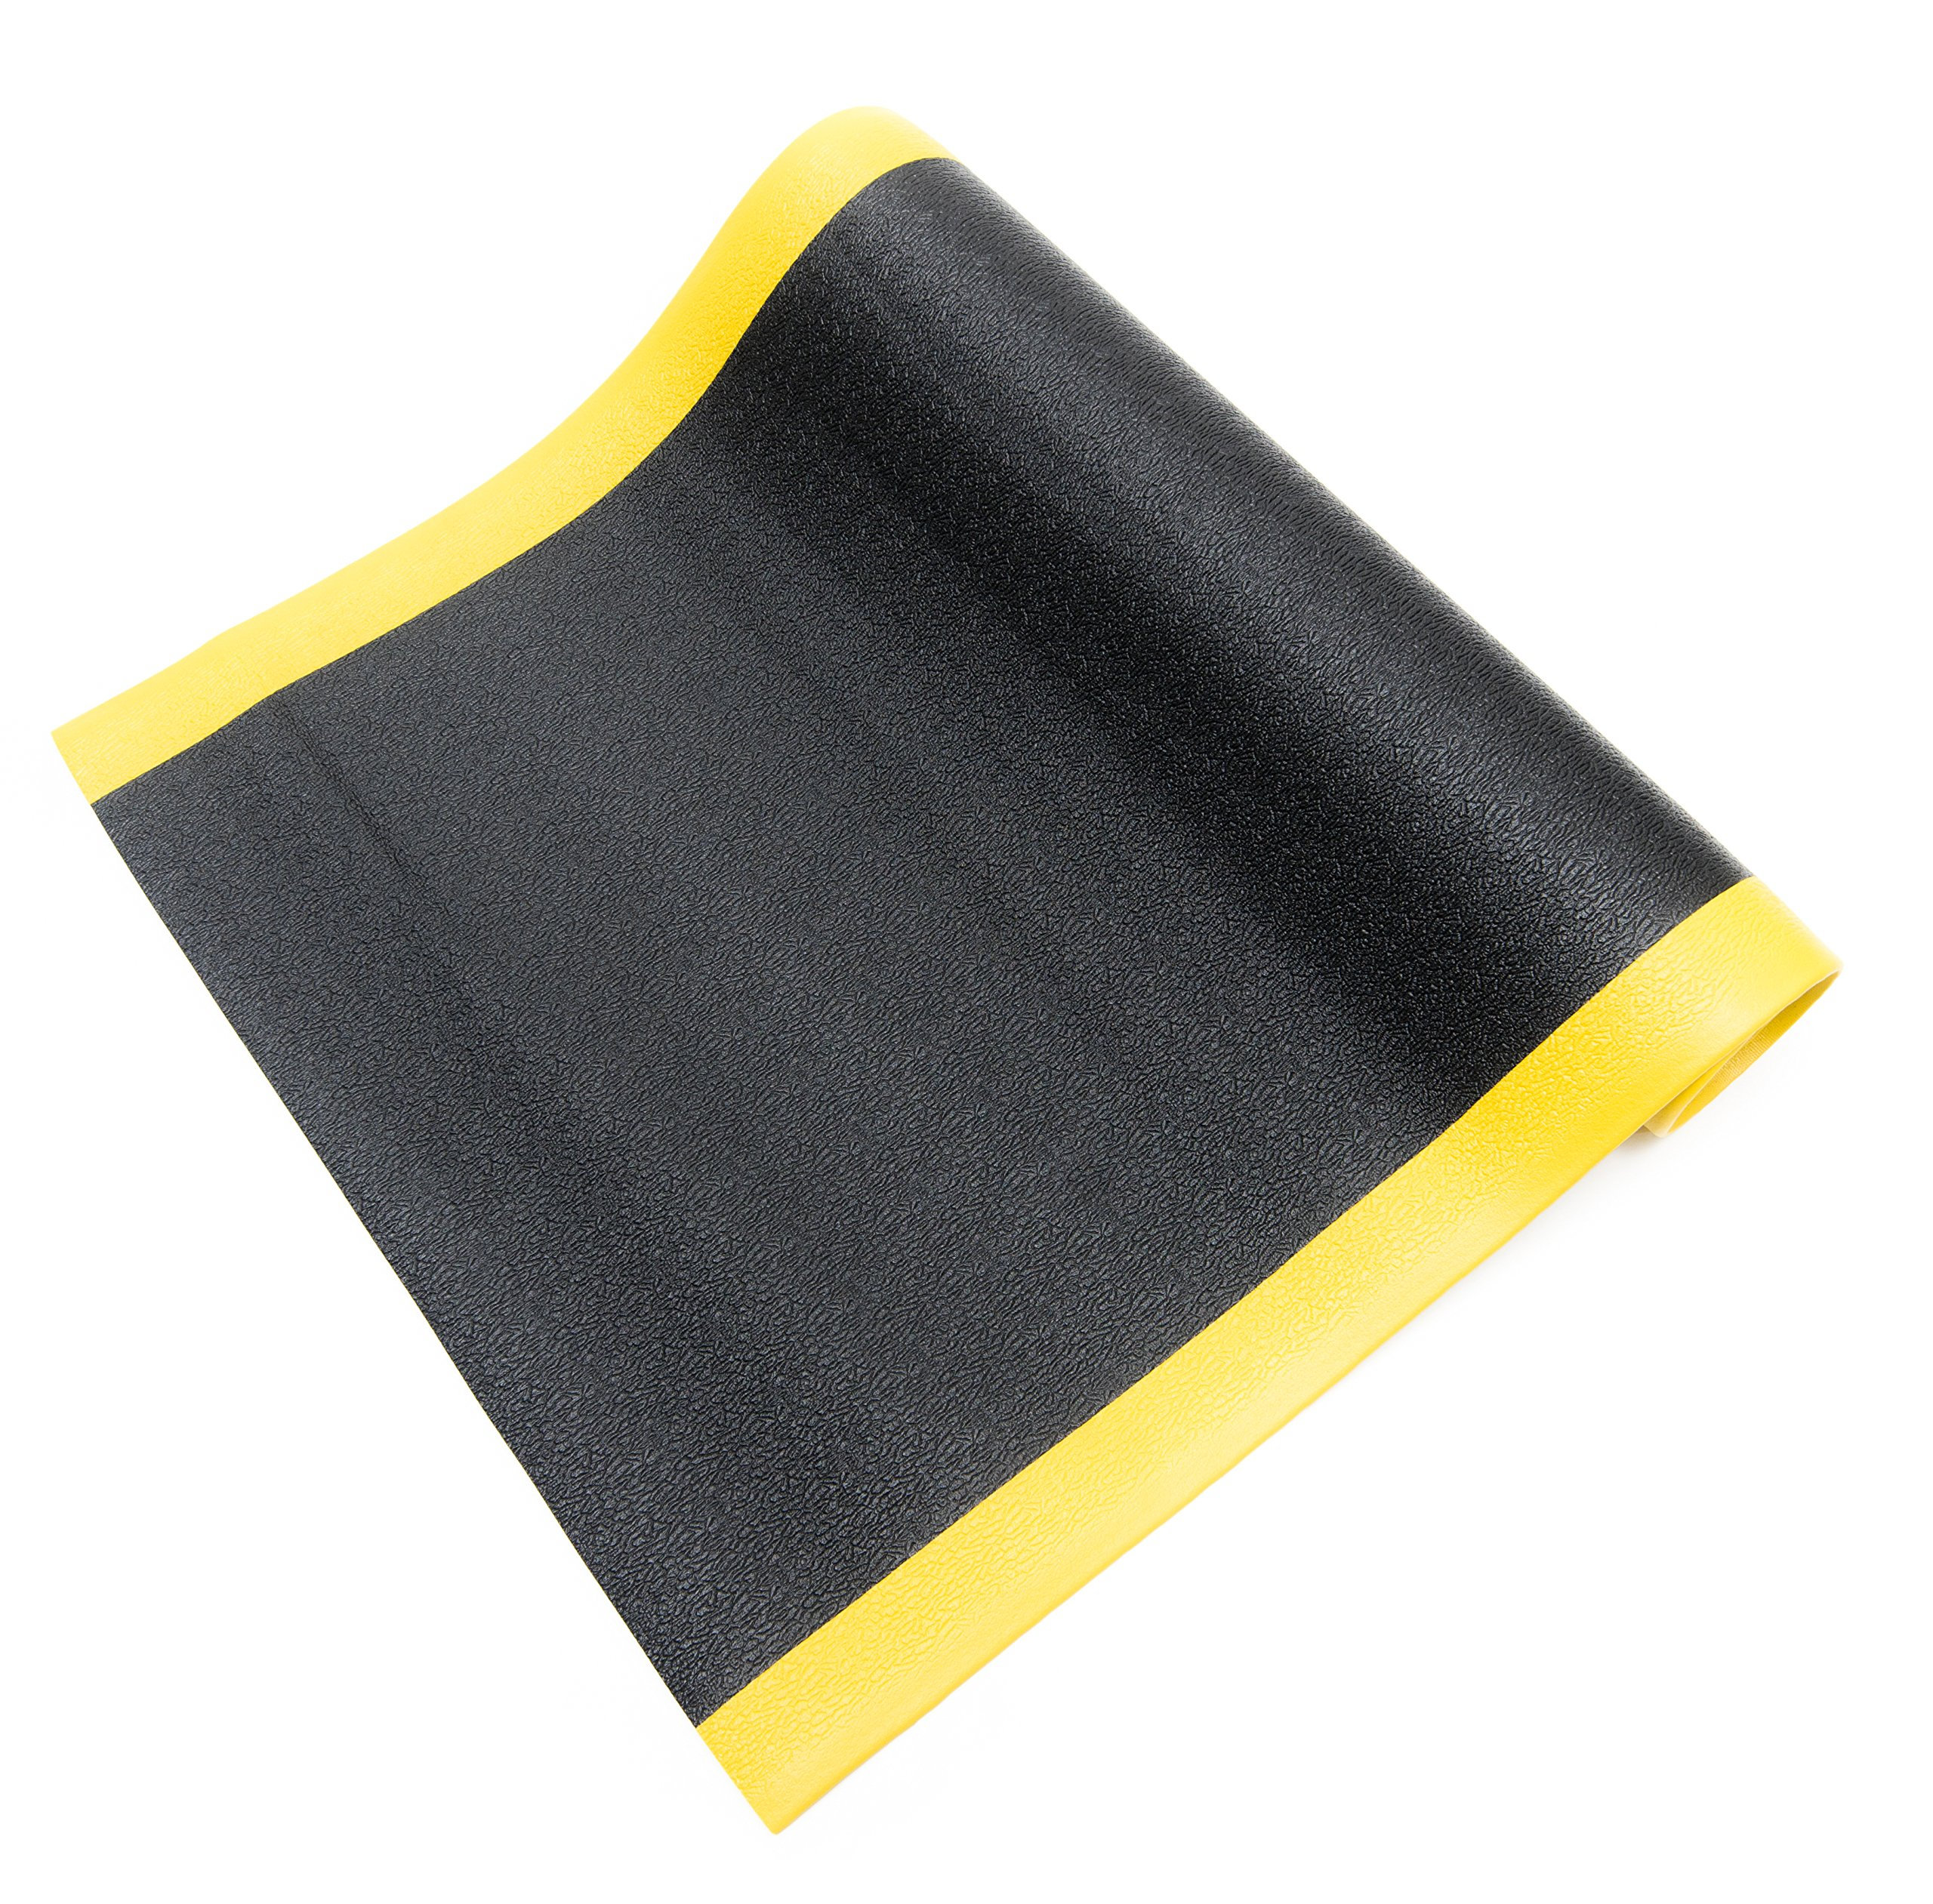 Bertech Anti Fatigue Vinyl Foam Floor Mat, 3' Wide x 8' Long x 3/8'' Thick, Textured Pattern, Black w/Yellow Border (Made in USA)